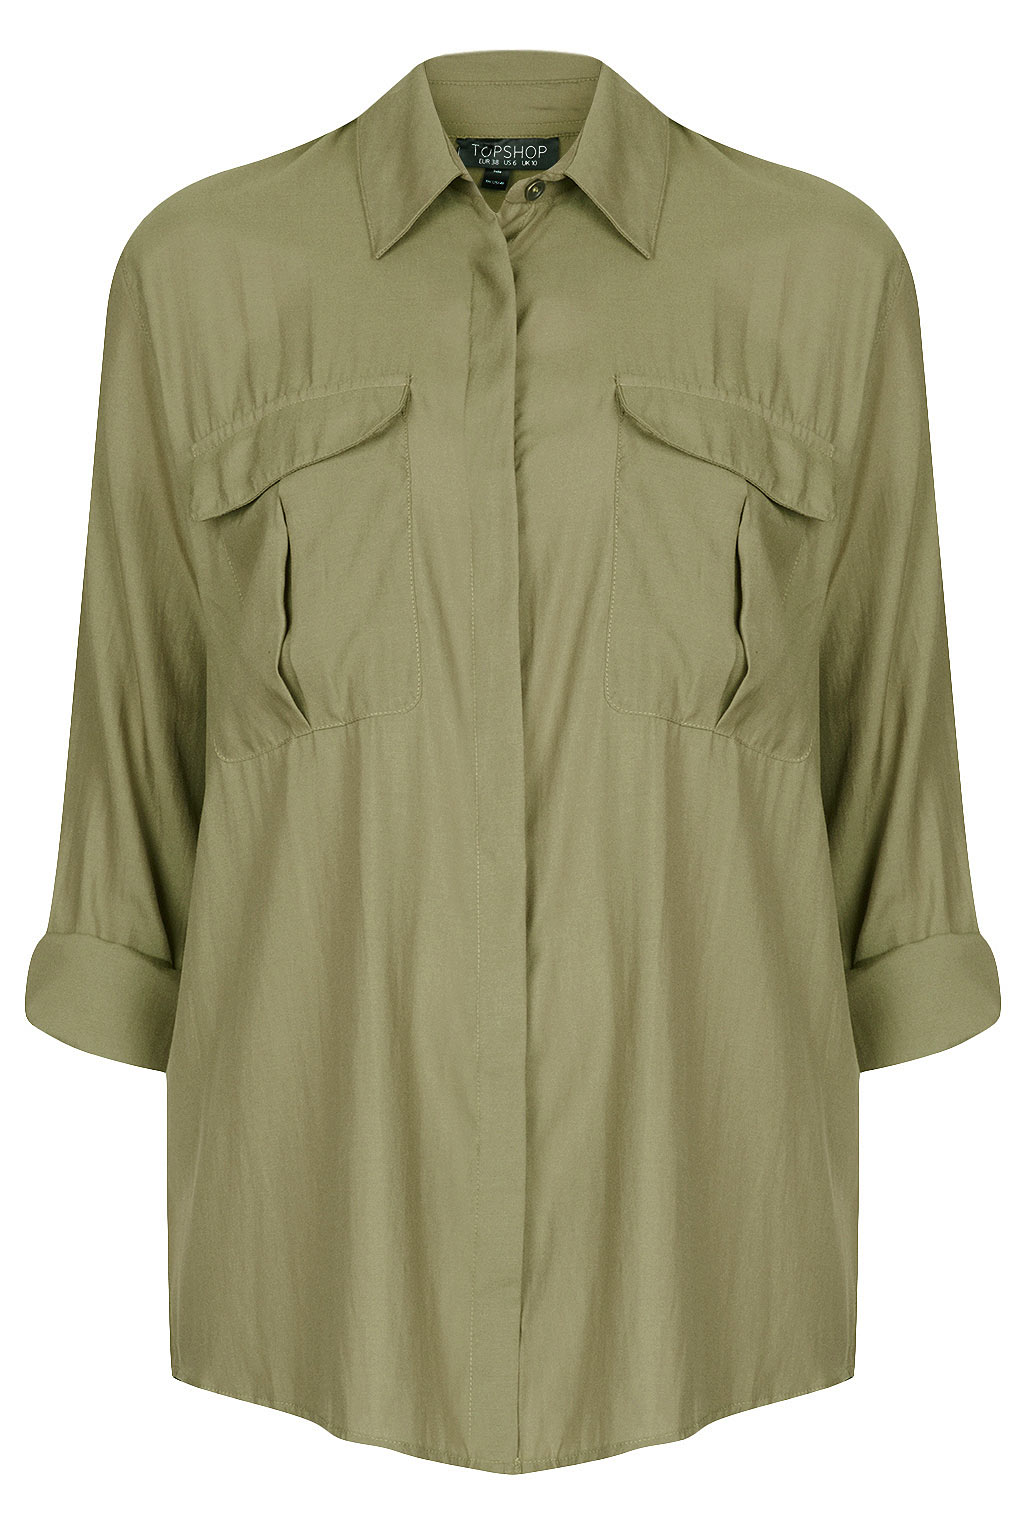 Lyst topshop casual safari shirt in natural for Womens denim shirts topshop